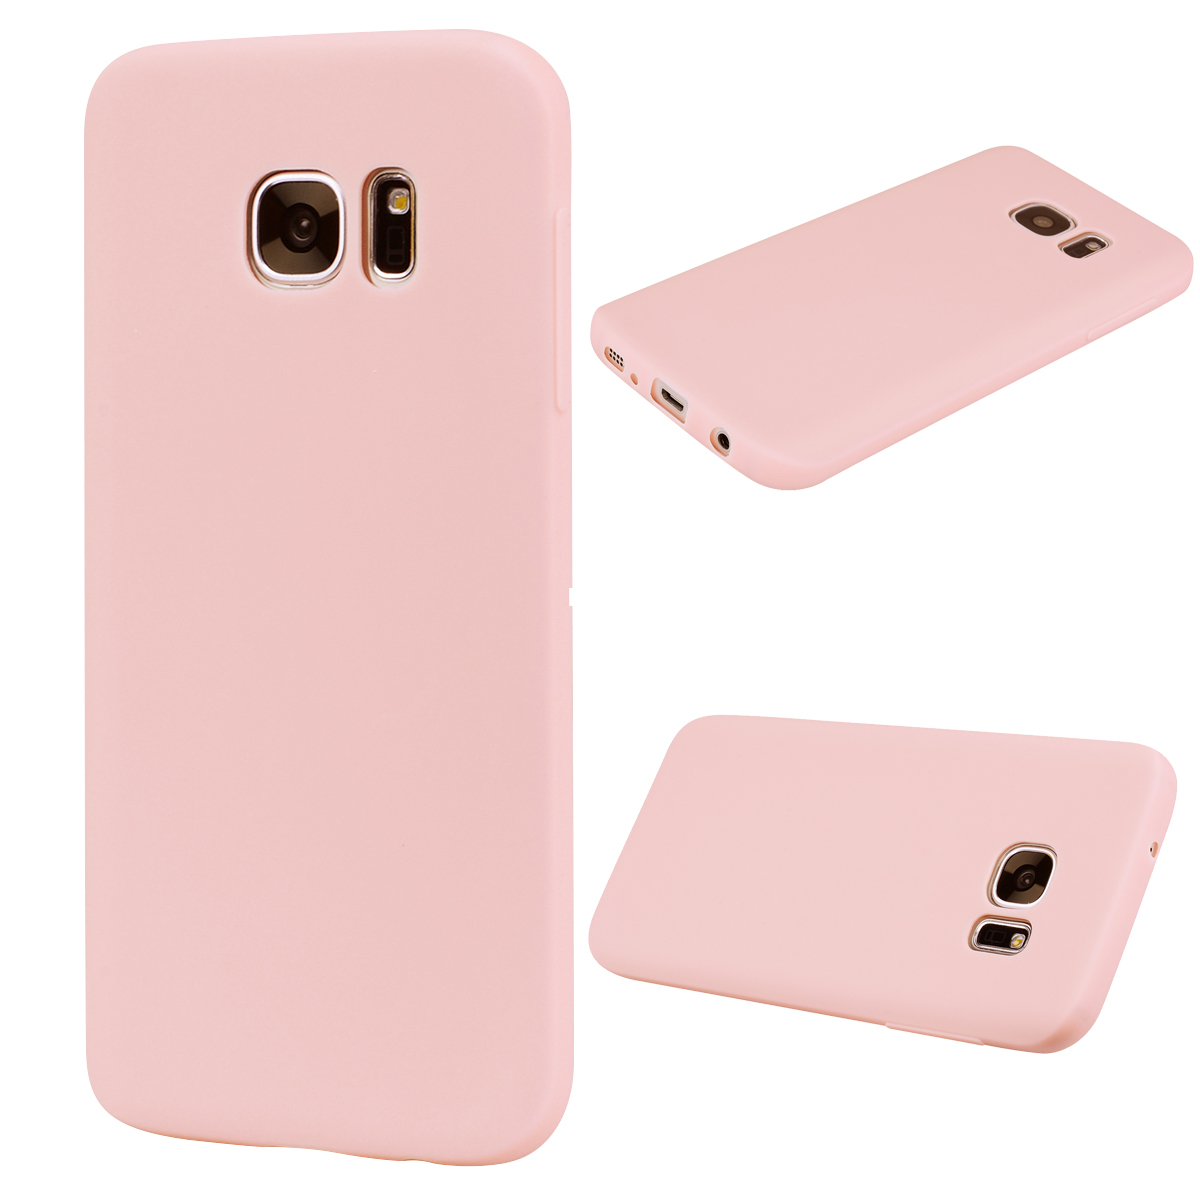 for Samsung S7 edge Cute Candy Color Matte TPU Anti-scratch Non-slip Protective Cover Back Case Light pink